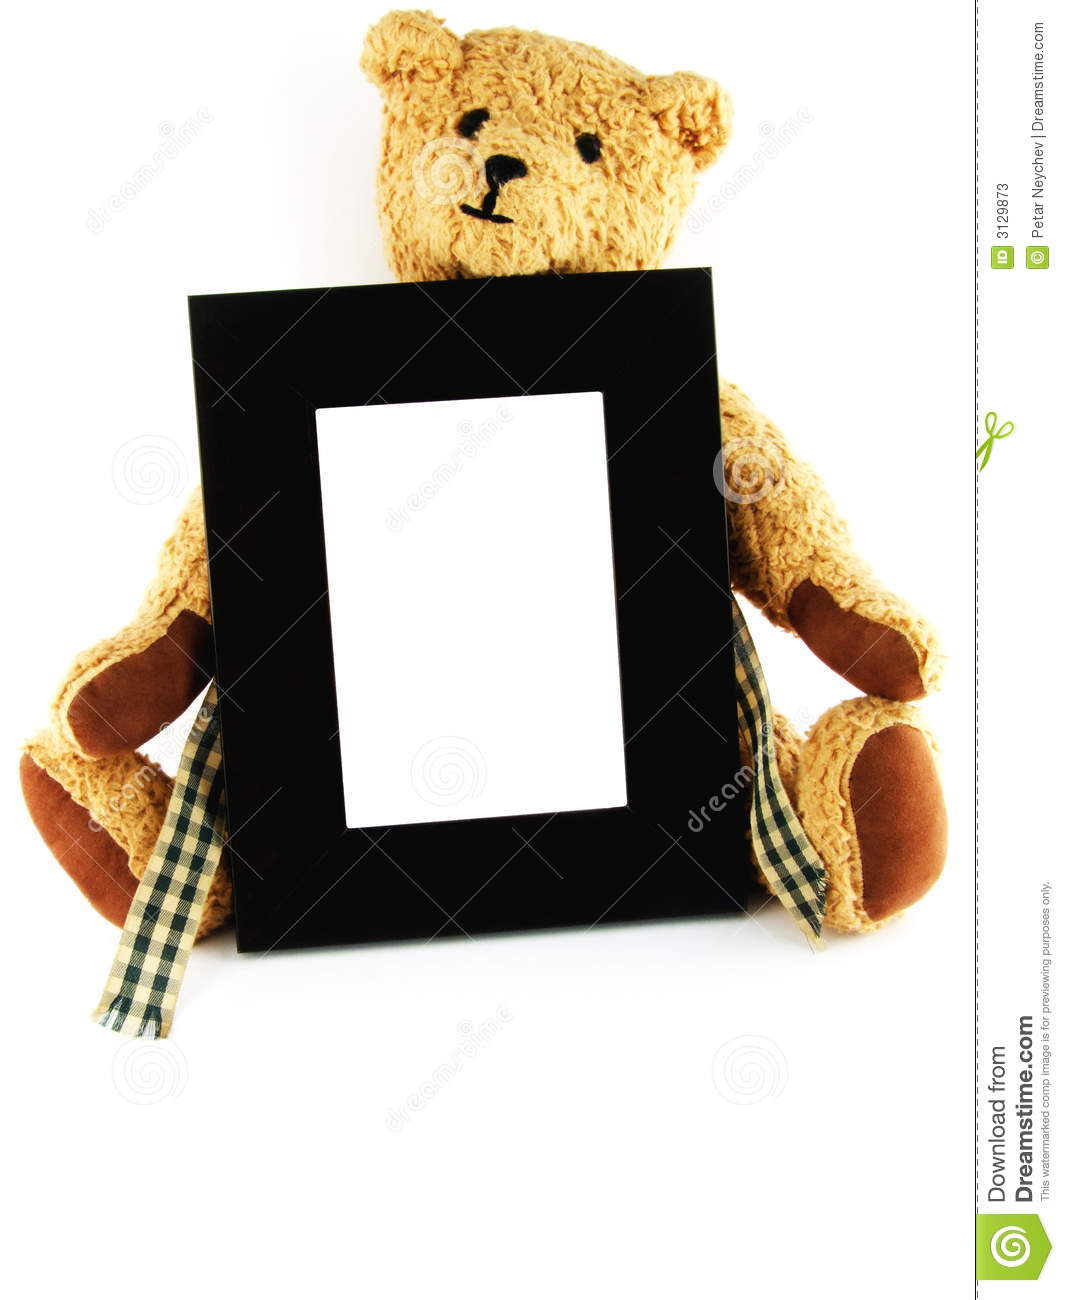 Teddy Bear Holding Frame stock image. Image of frame, bear - 3129873